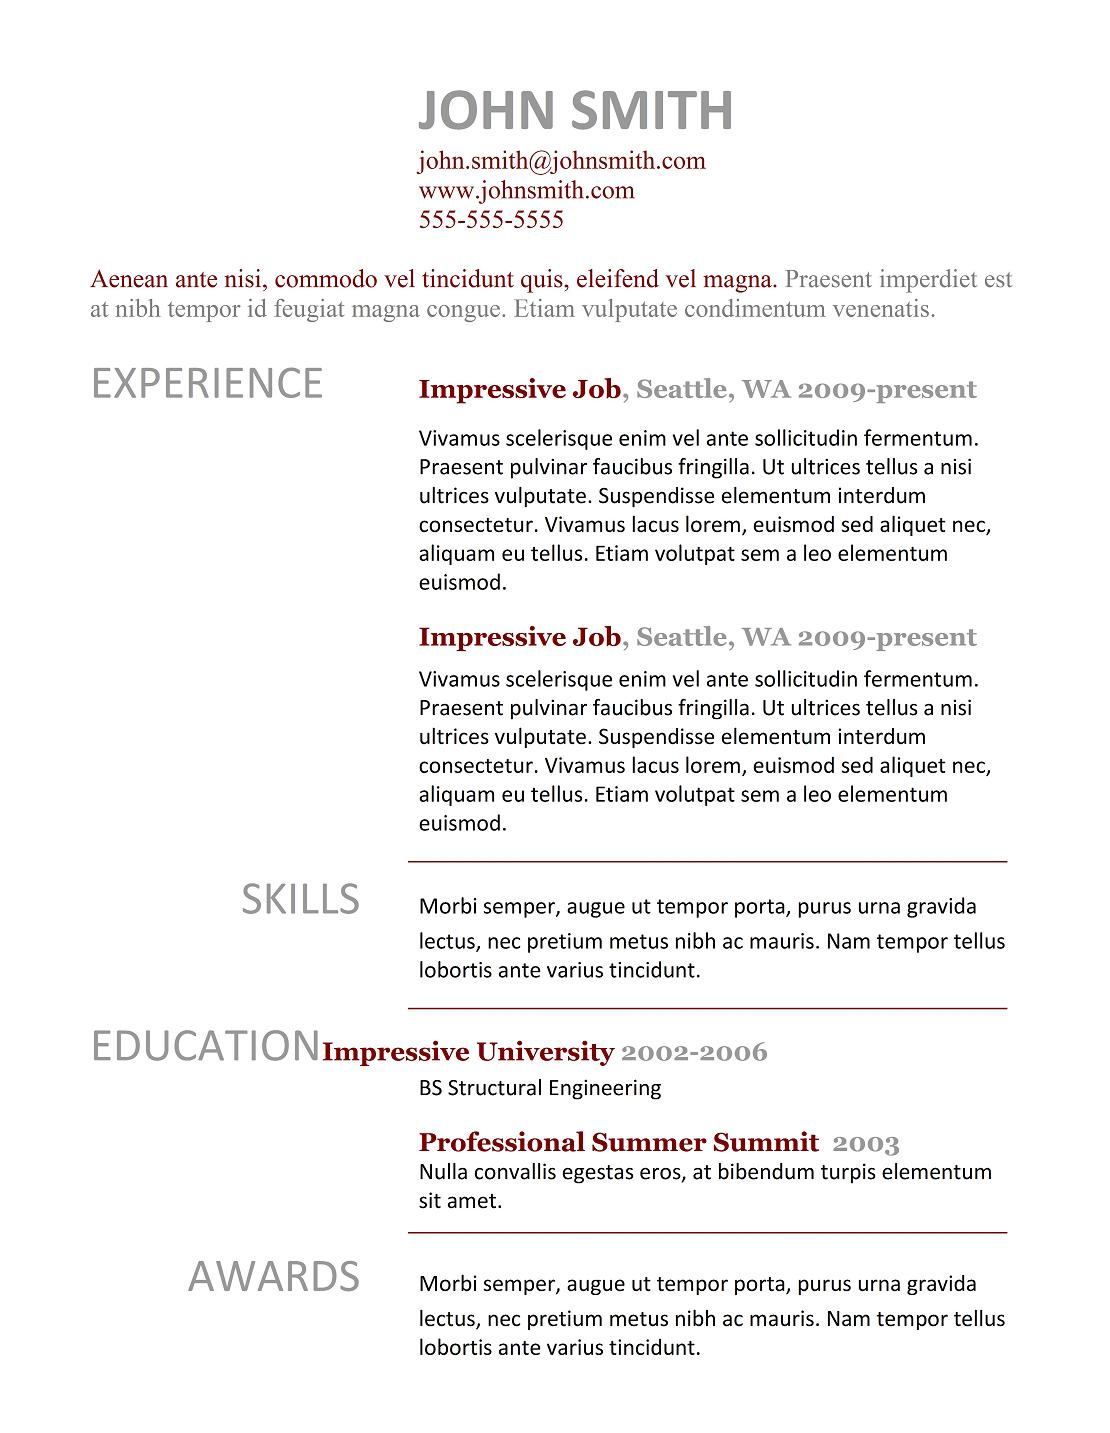 resume template for commerce students - Job Resume Template Free